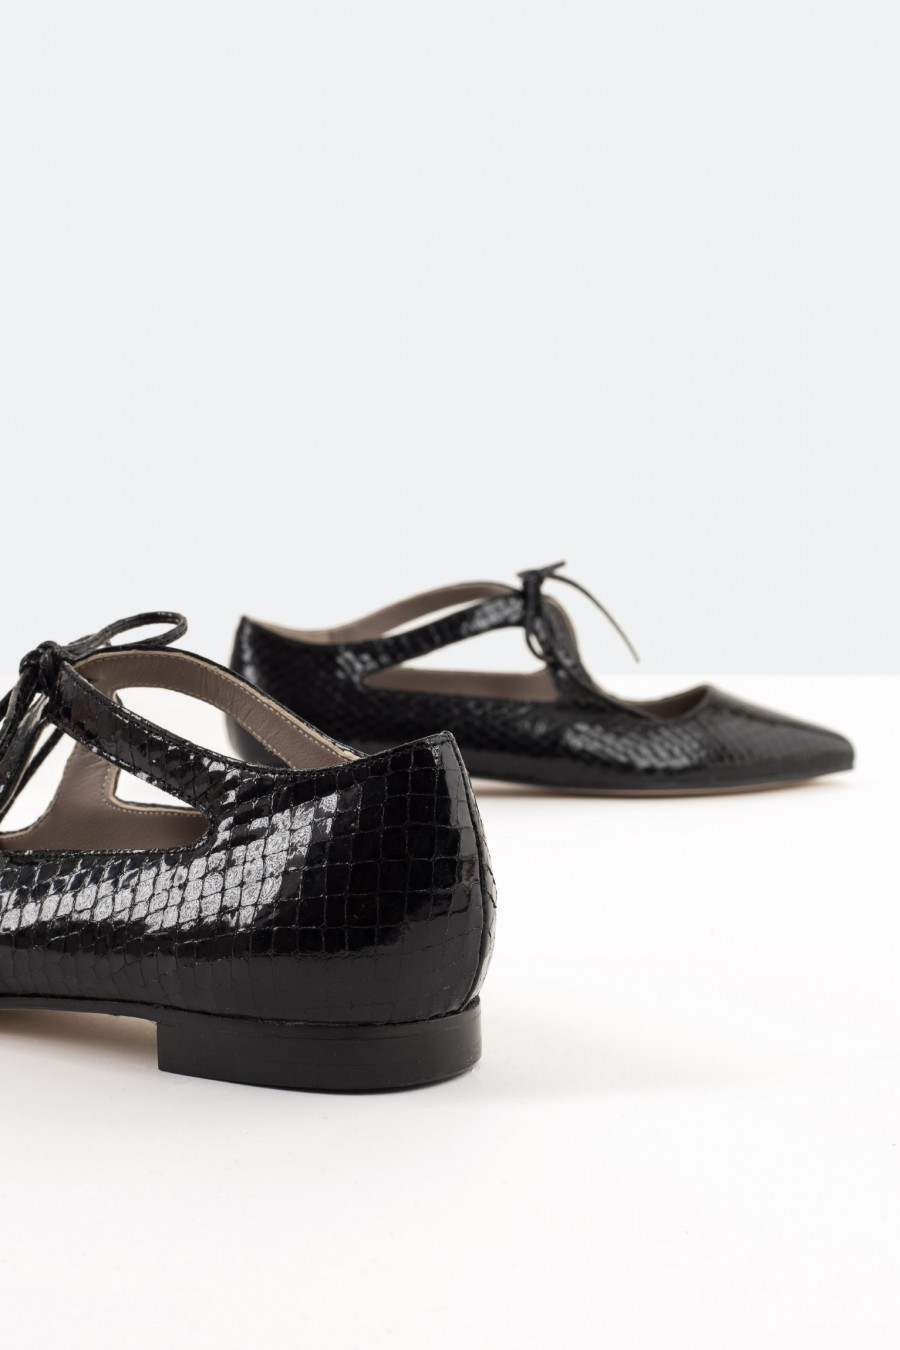 Inlaid patent leather flats